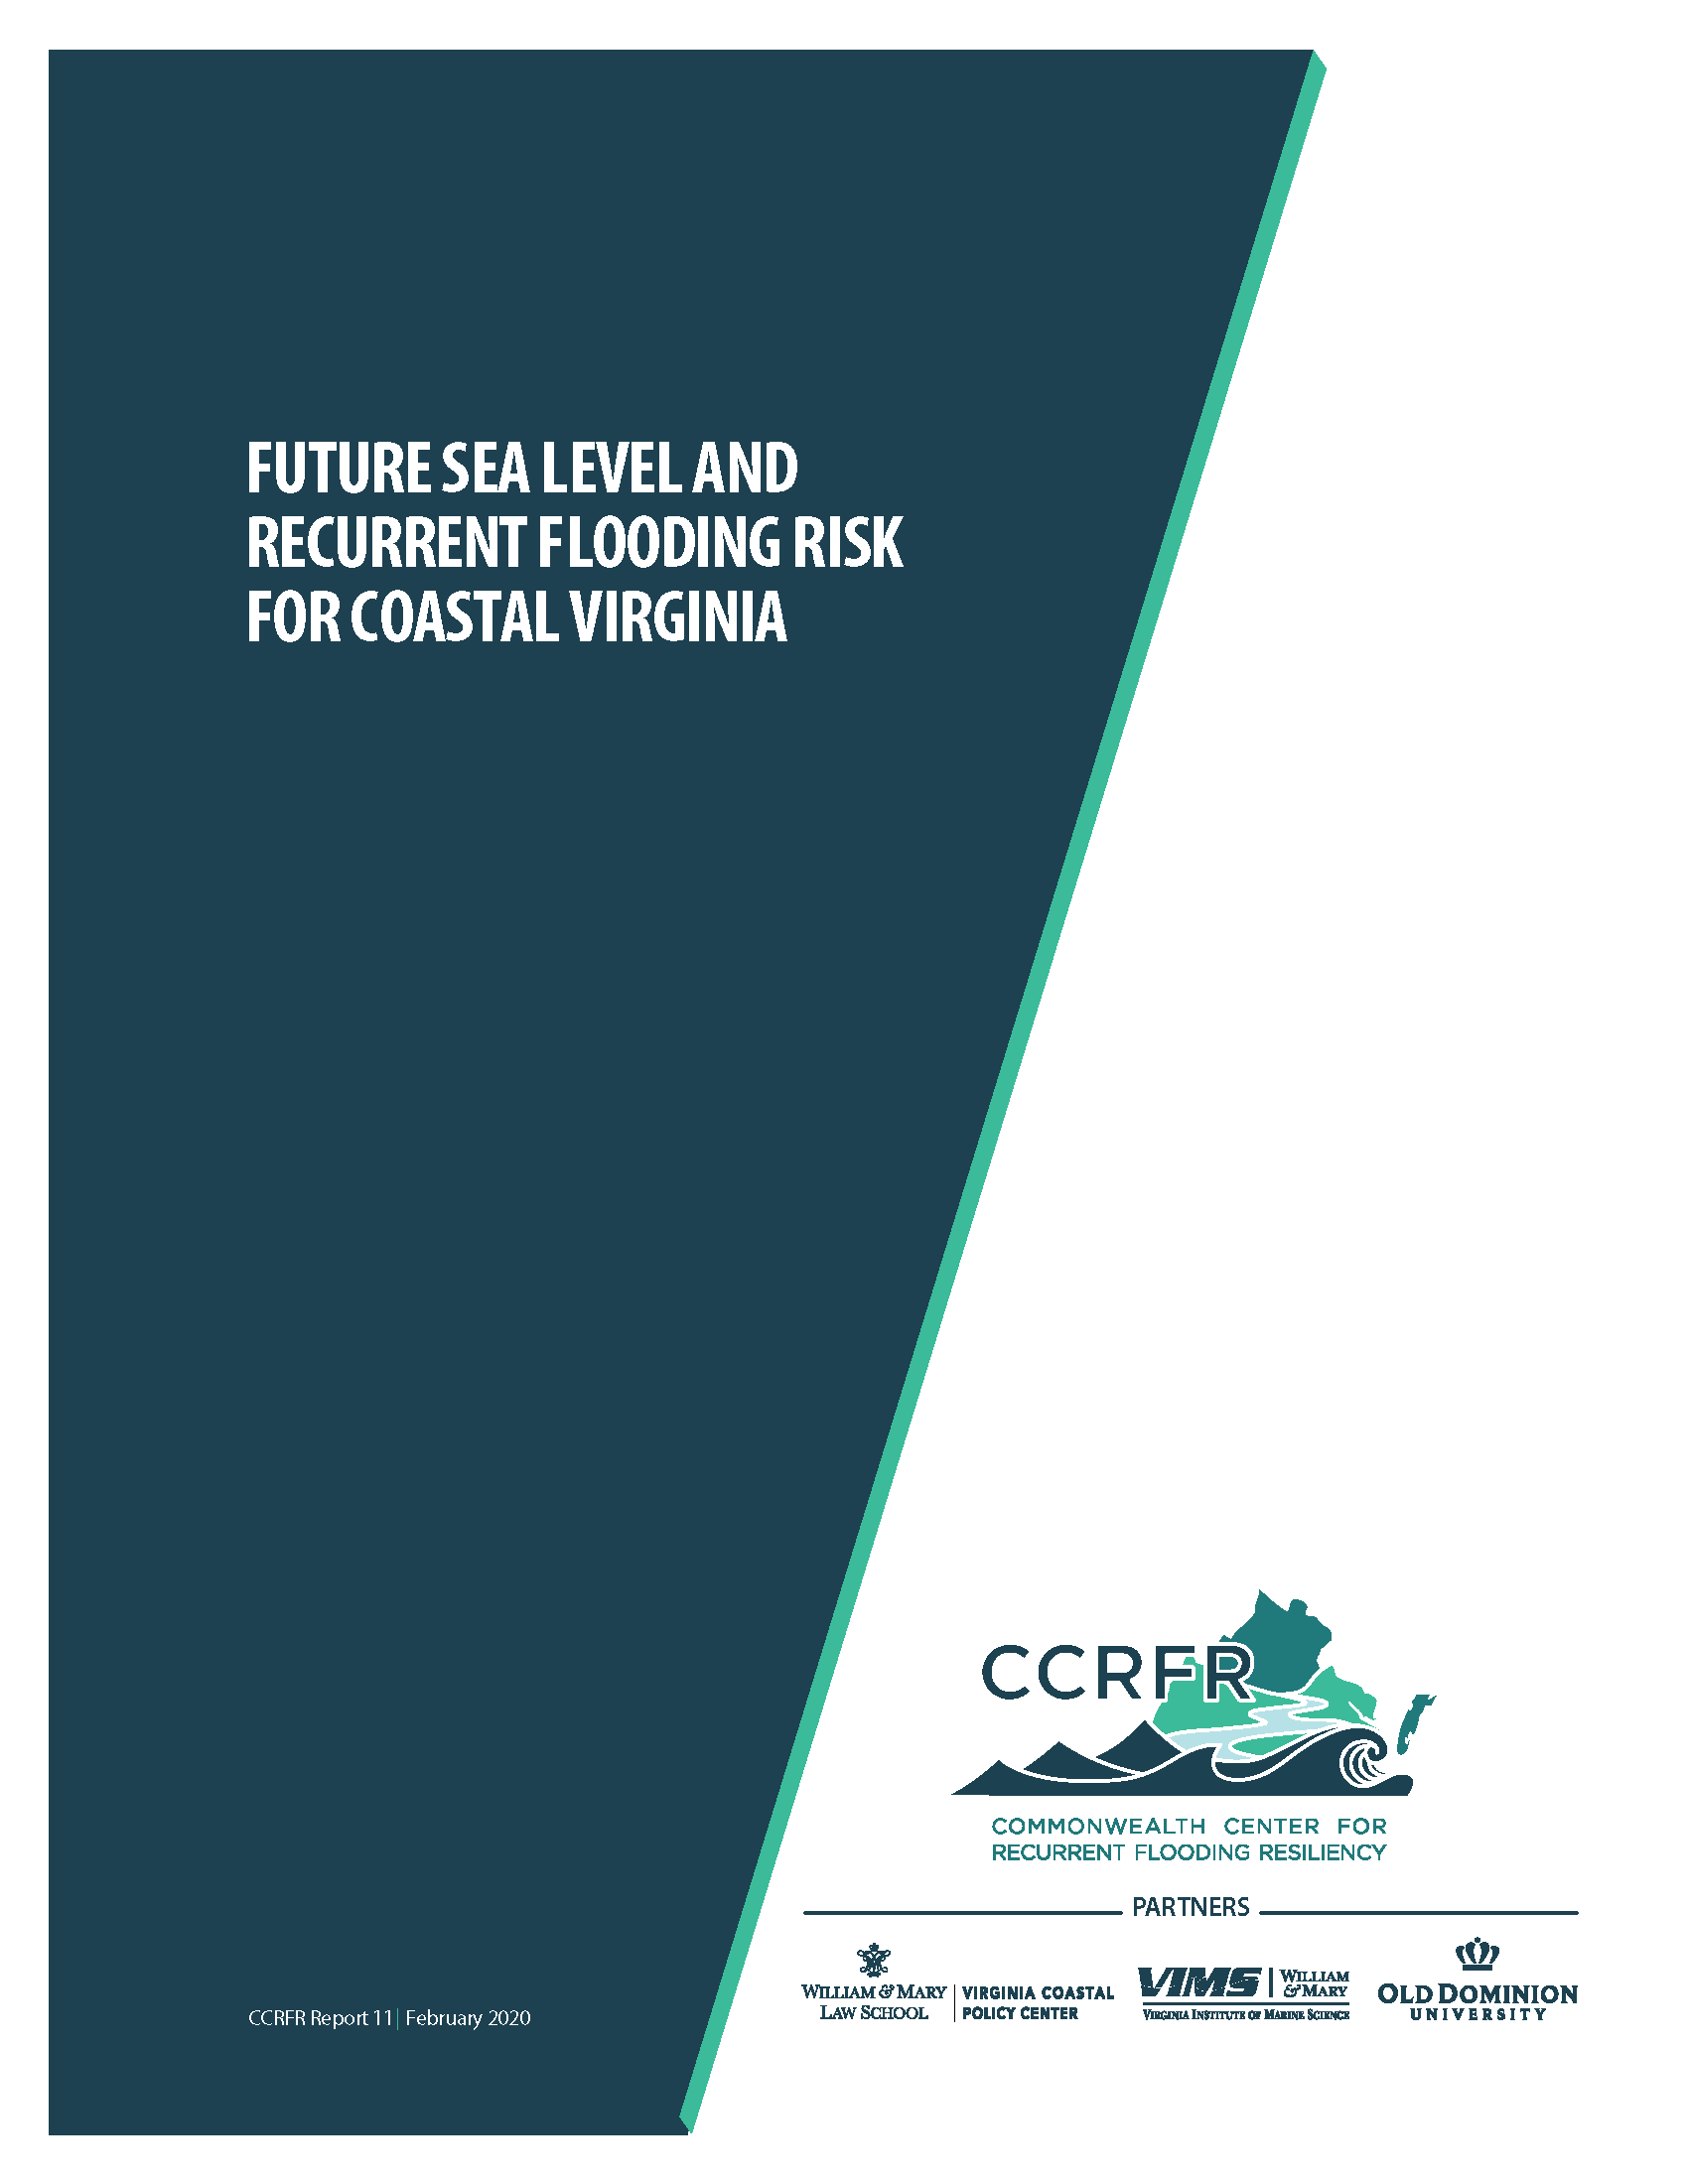 Pages from Future Sea Level and Recurrent Flooding Risk for Coastal Virginia - Final Version -cover pic